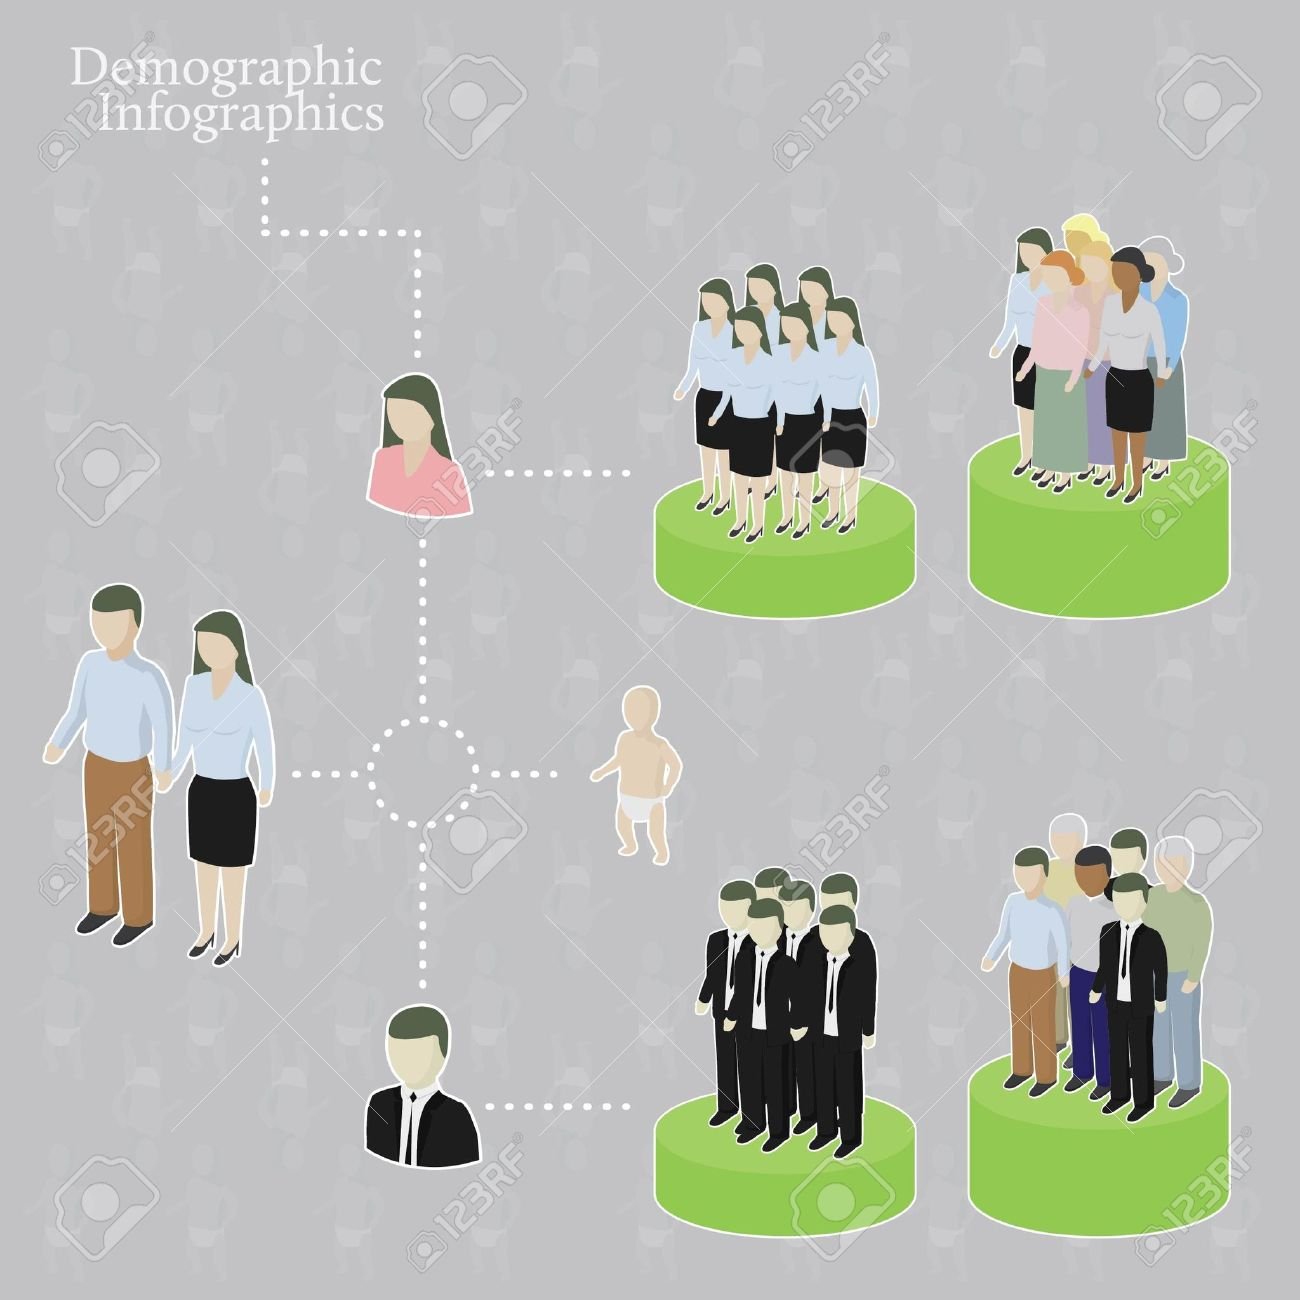 Demographic infographics. Variety of people. Stock Vector - 10605557